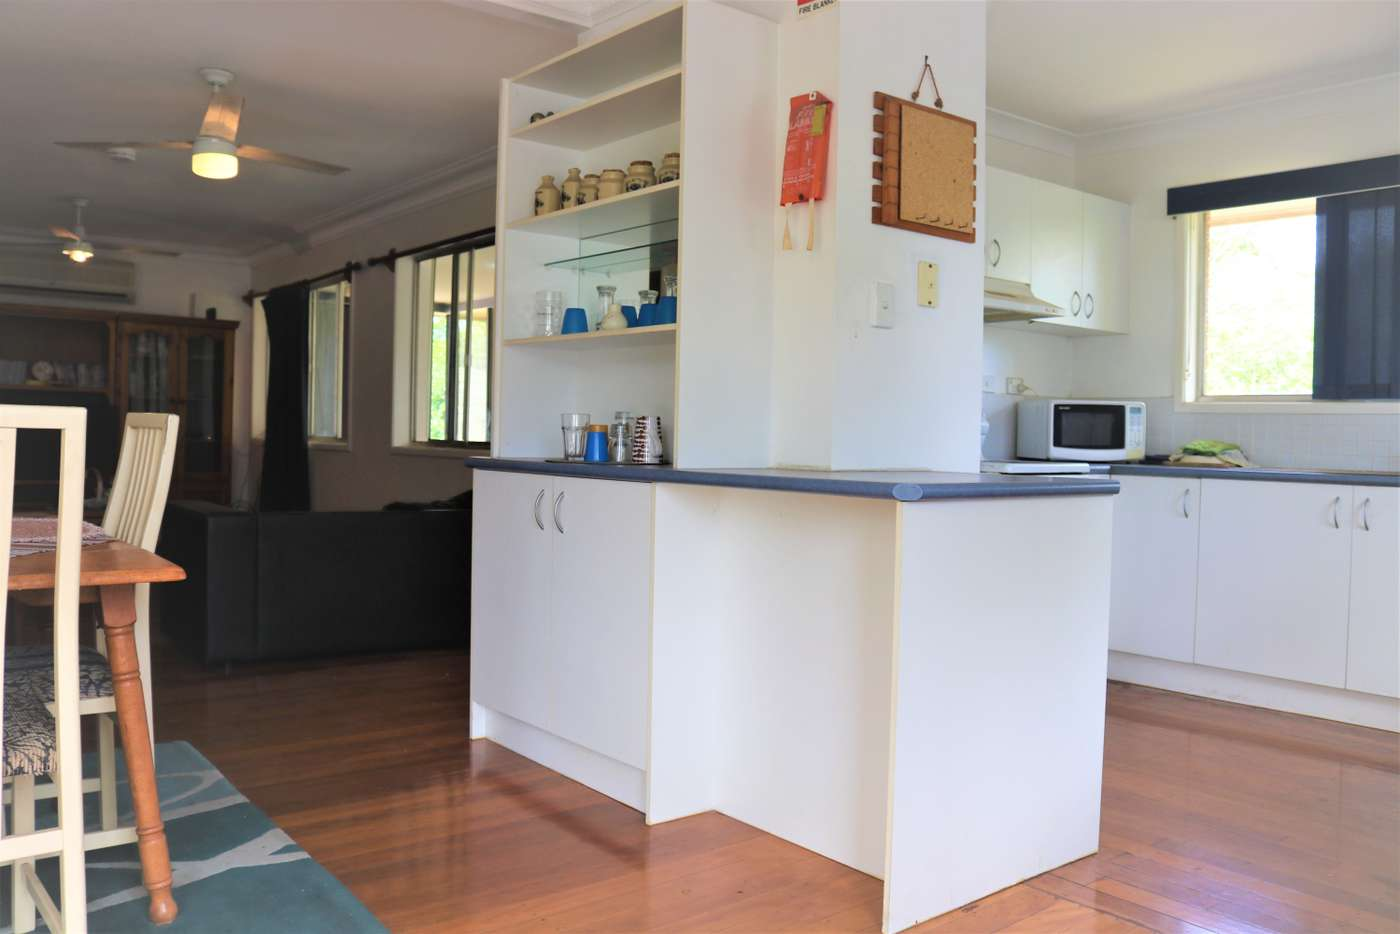 Sixth view of Homely unit listing, 89 Dykes St, Mount Gravatt East QLD 4122